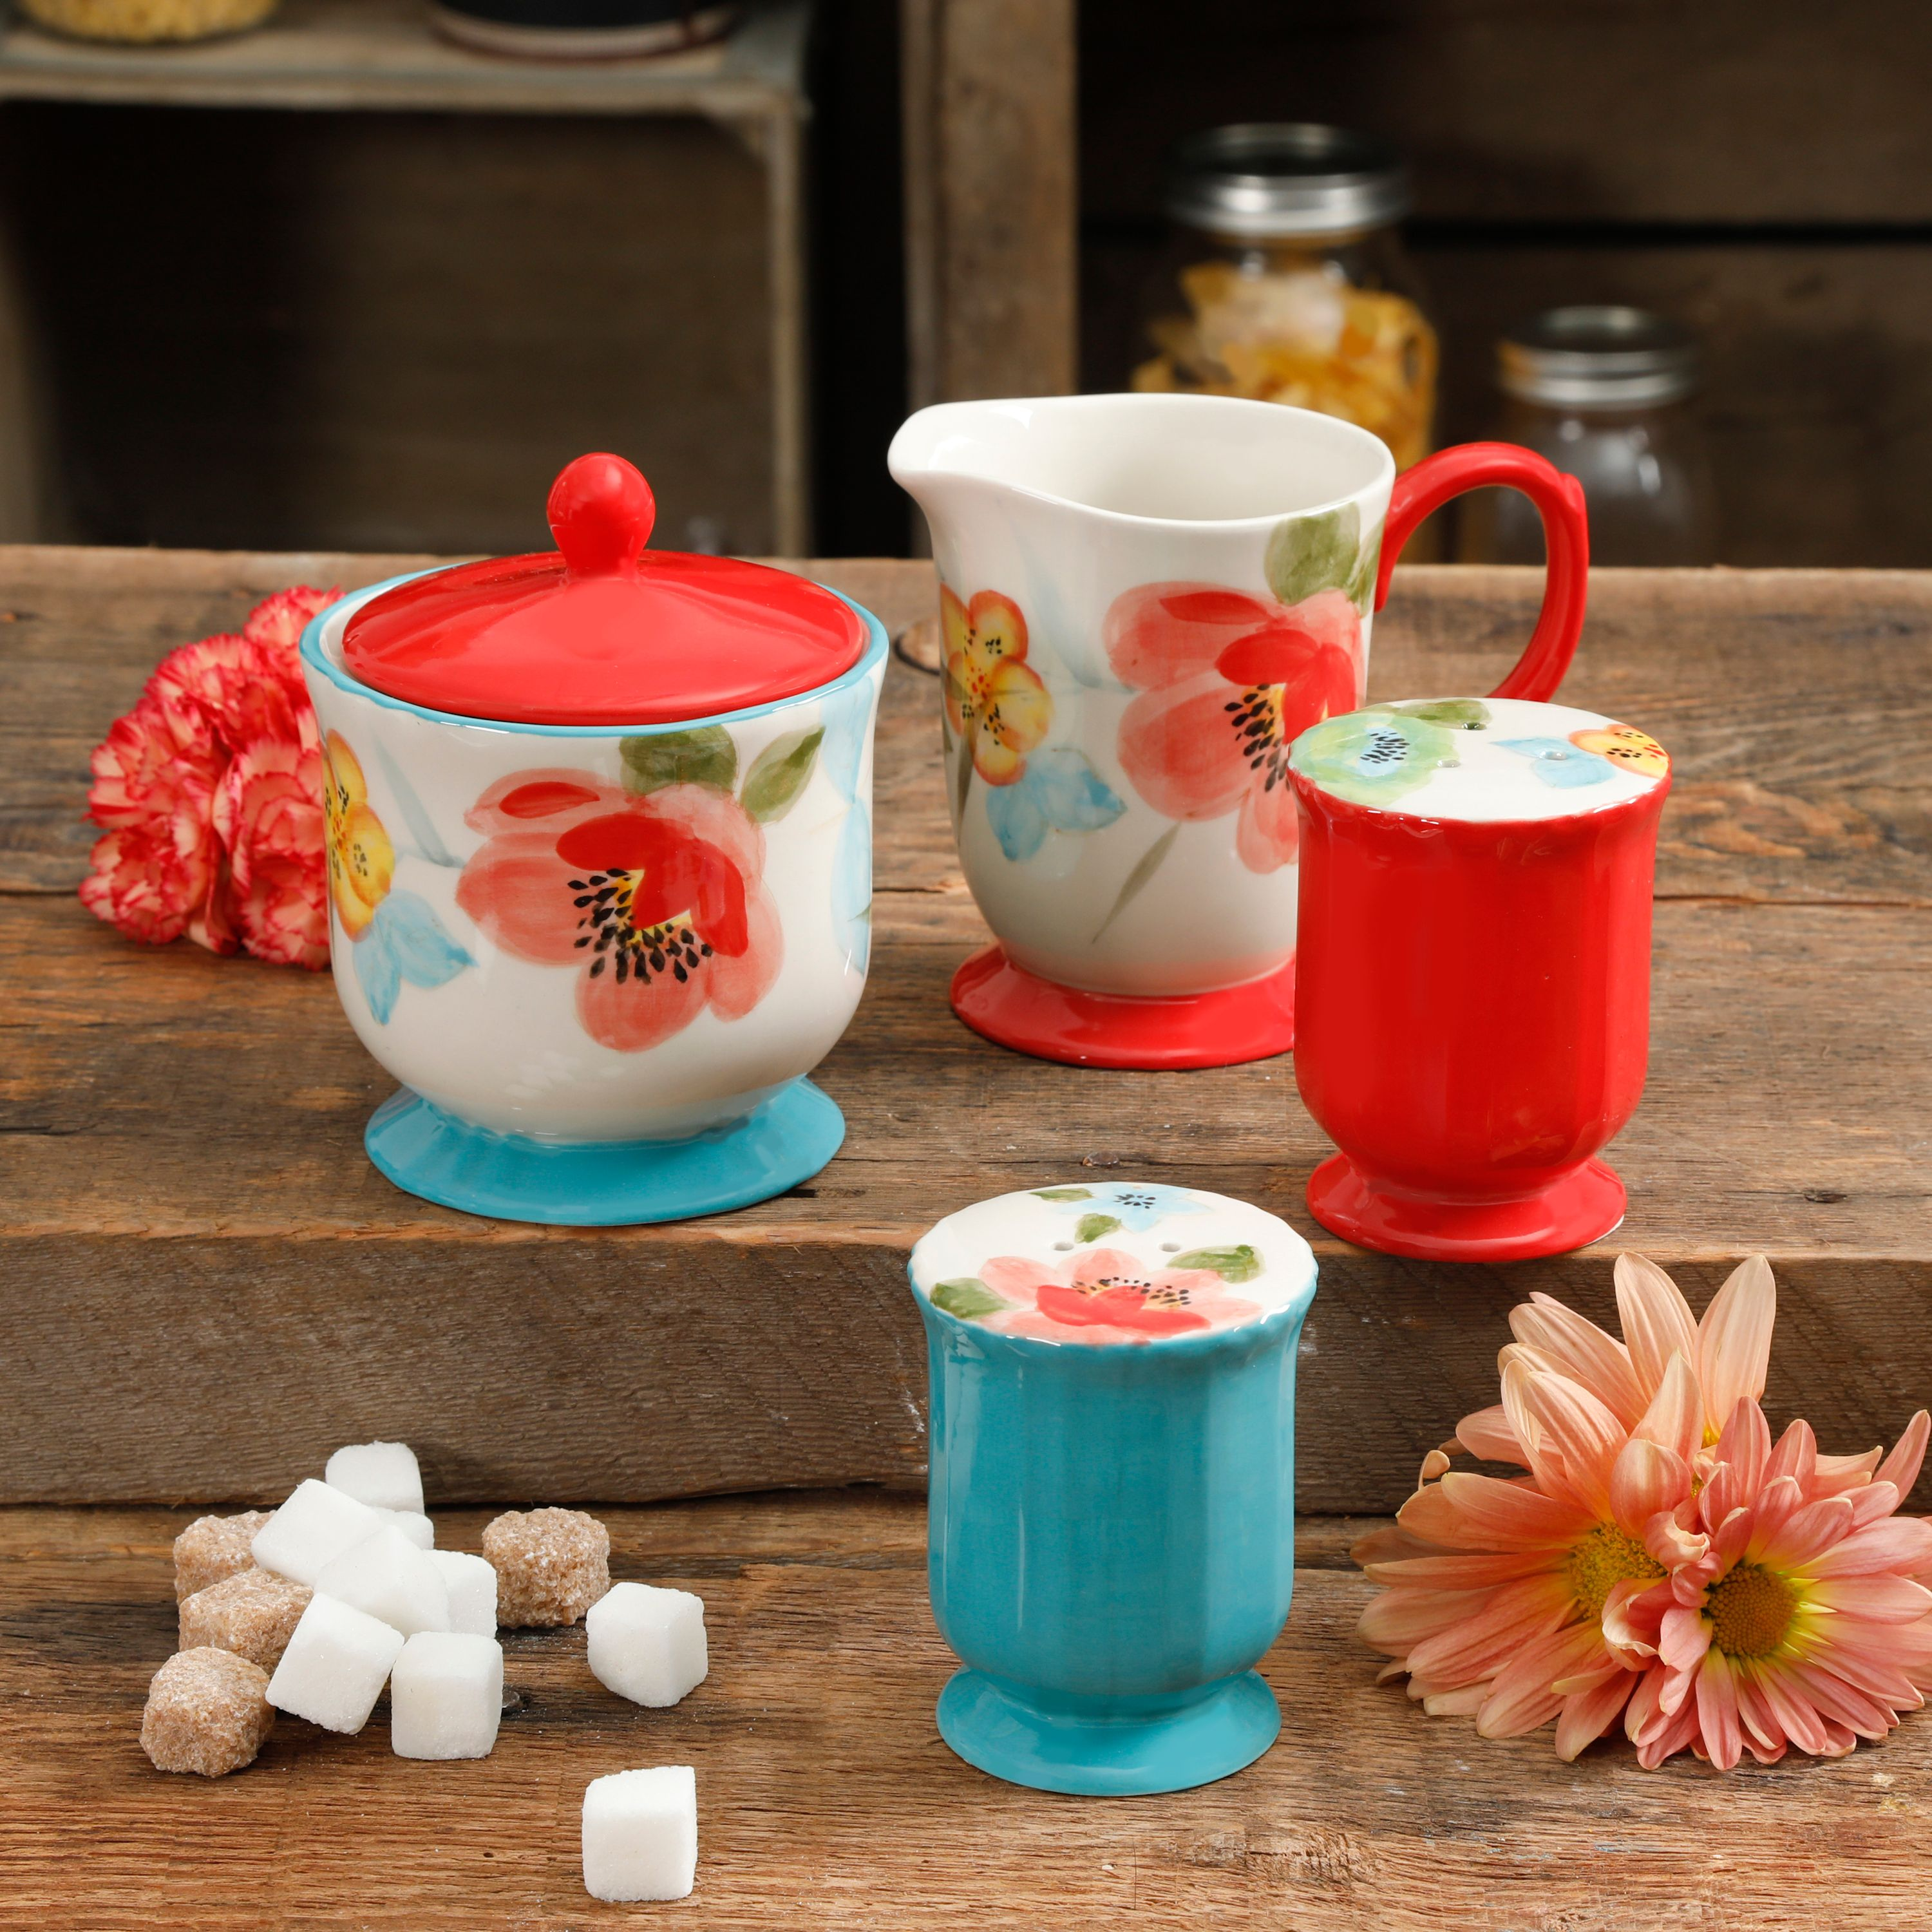 The Pioneer Woman Vintage Bloom 5-Piece Sugar and Creamer, Salt & Pepper Set